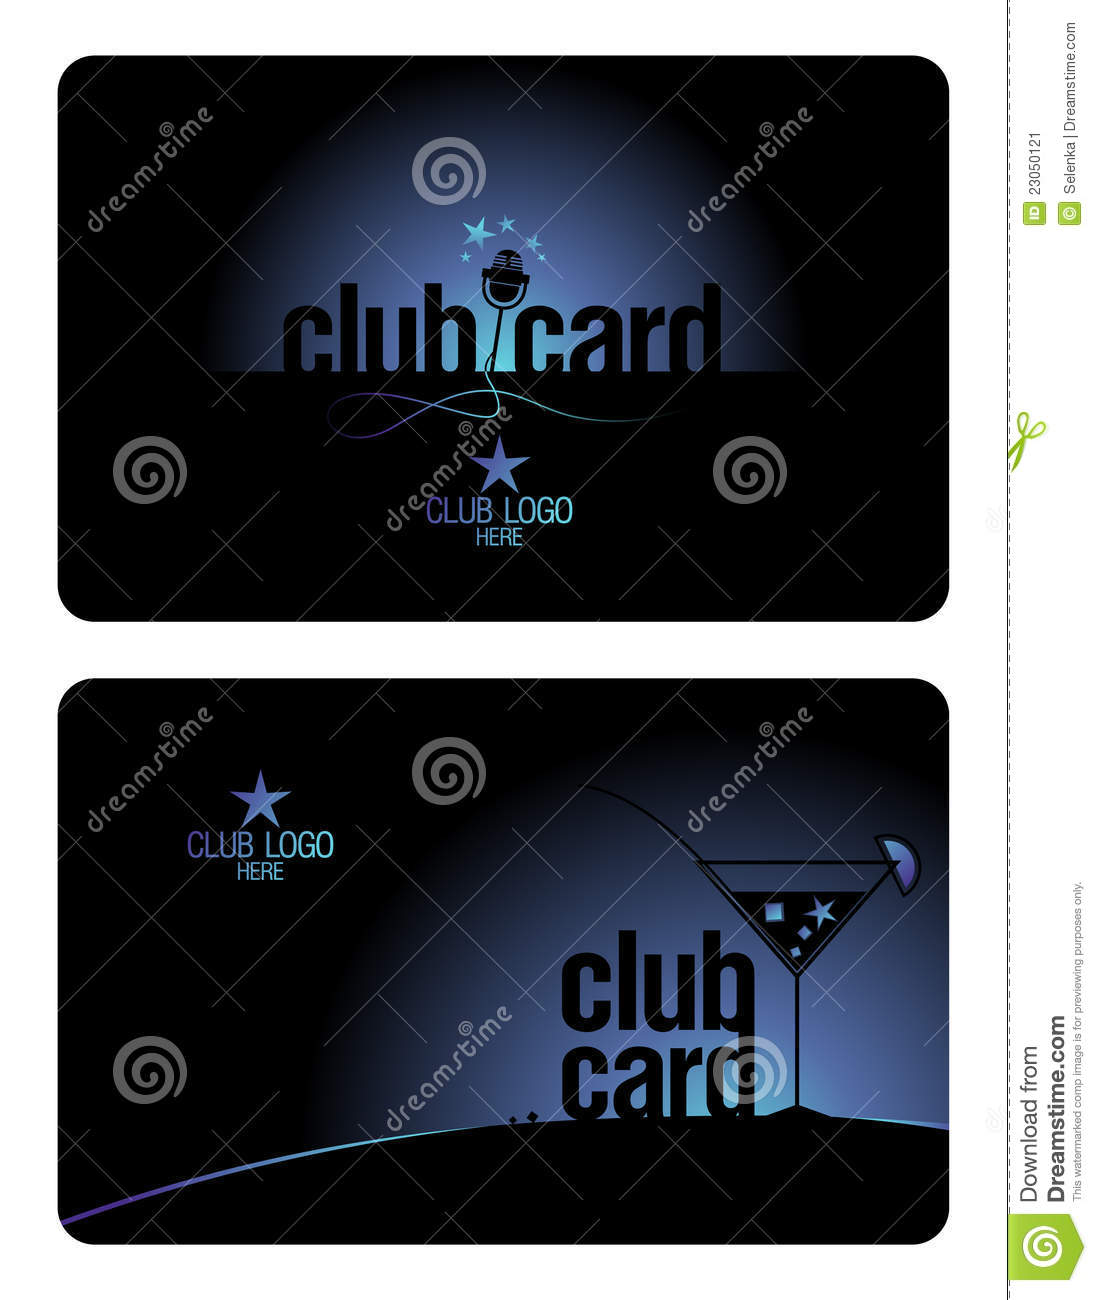 Club Card Design Template.  Membership Cards Templates